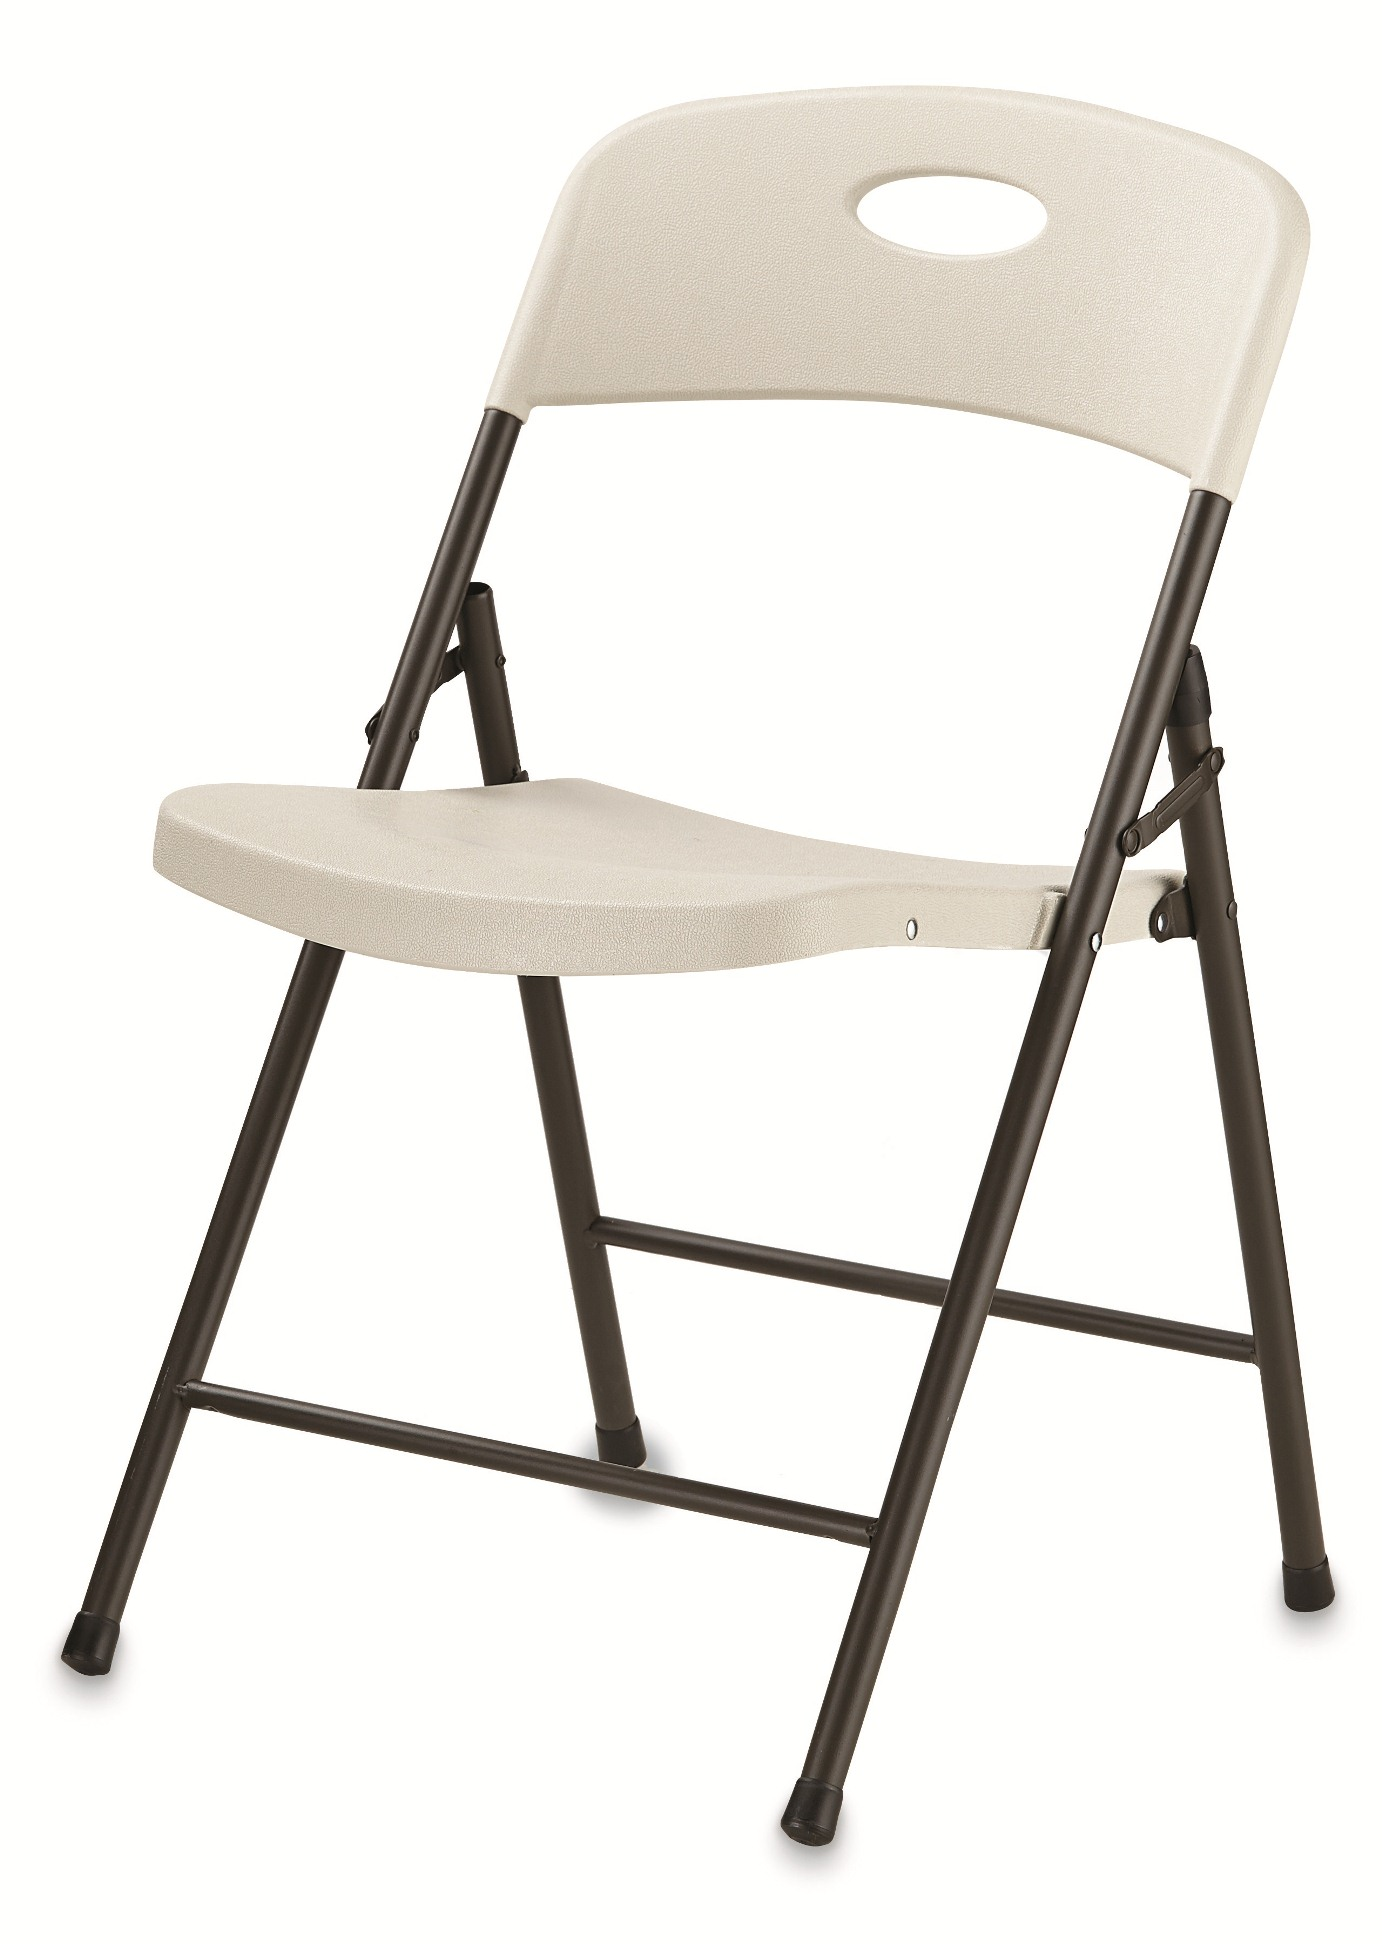 Northwest Territory Lightweight Folding Chair  Fitness